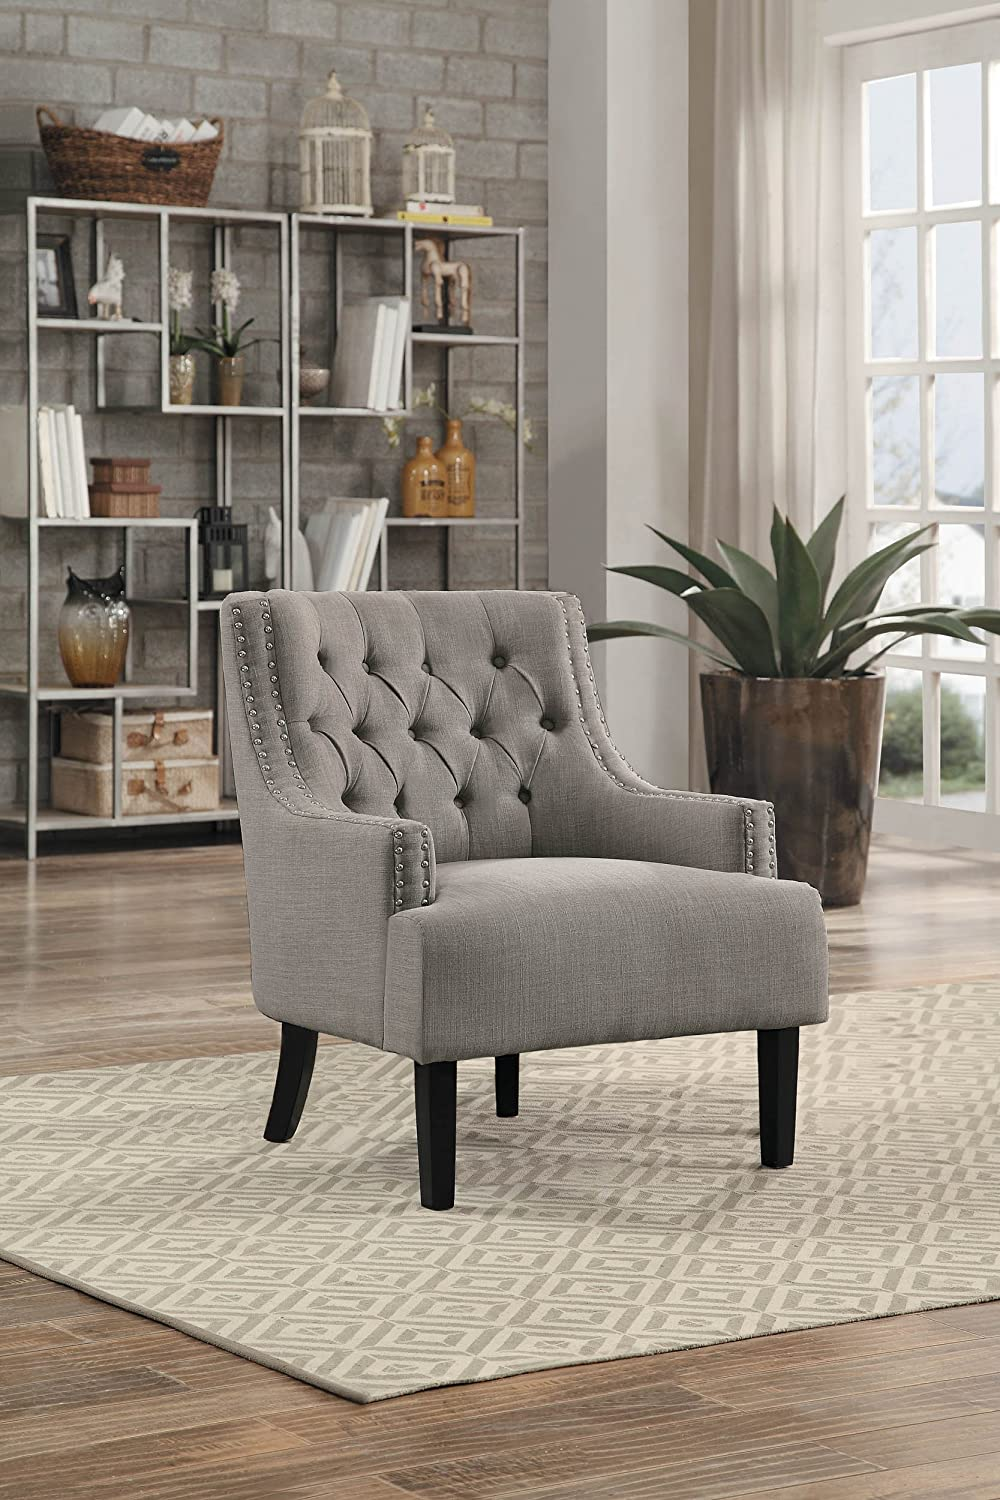 Homelegance Charisma Fabric Uphostered Accent Chair, Taupe